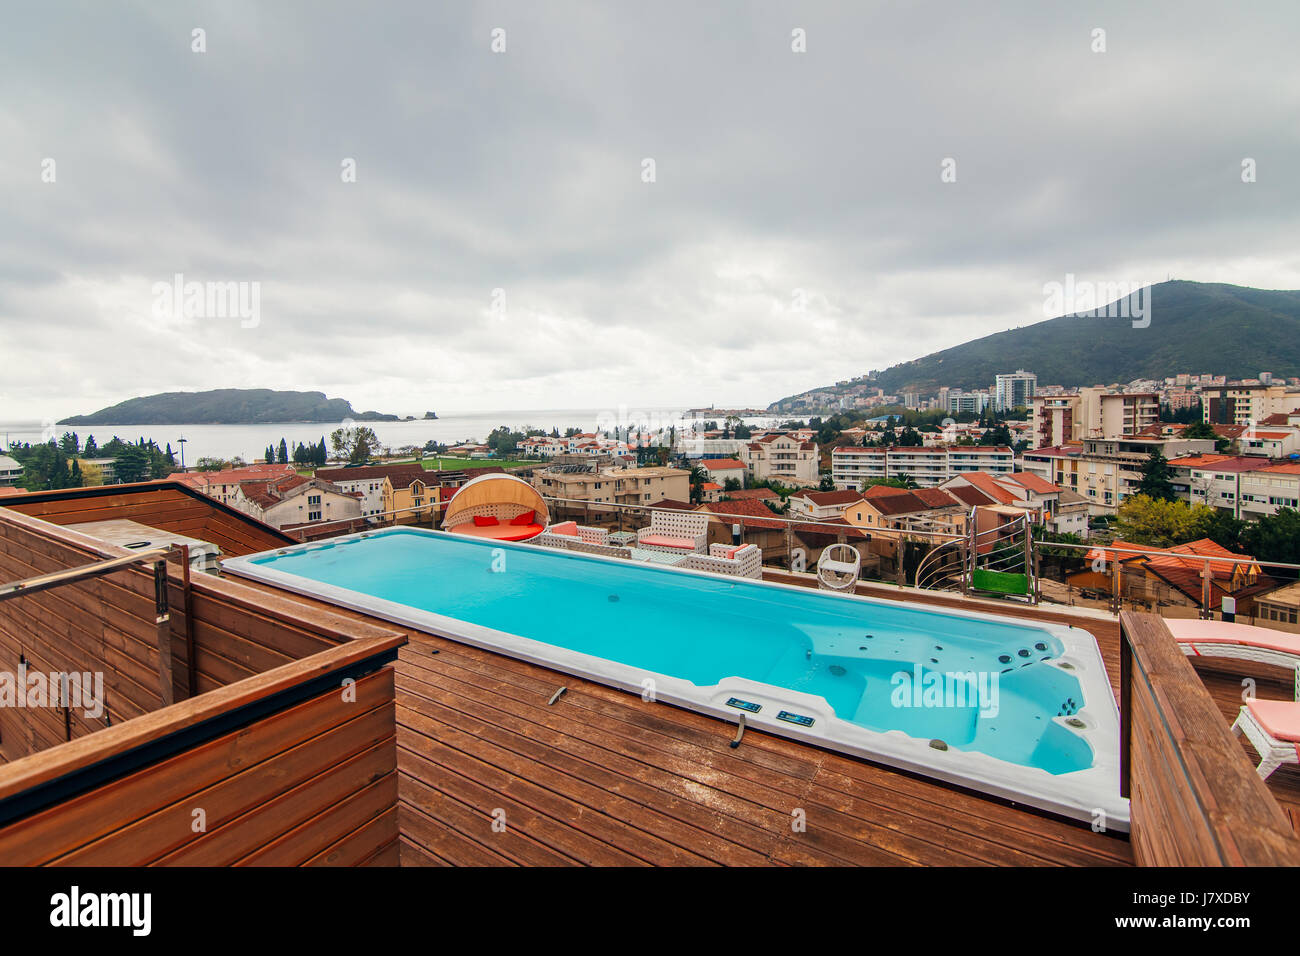 Swimming Pool On The Roof Of A House Stock Photo Alamy